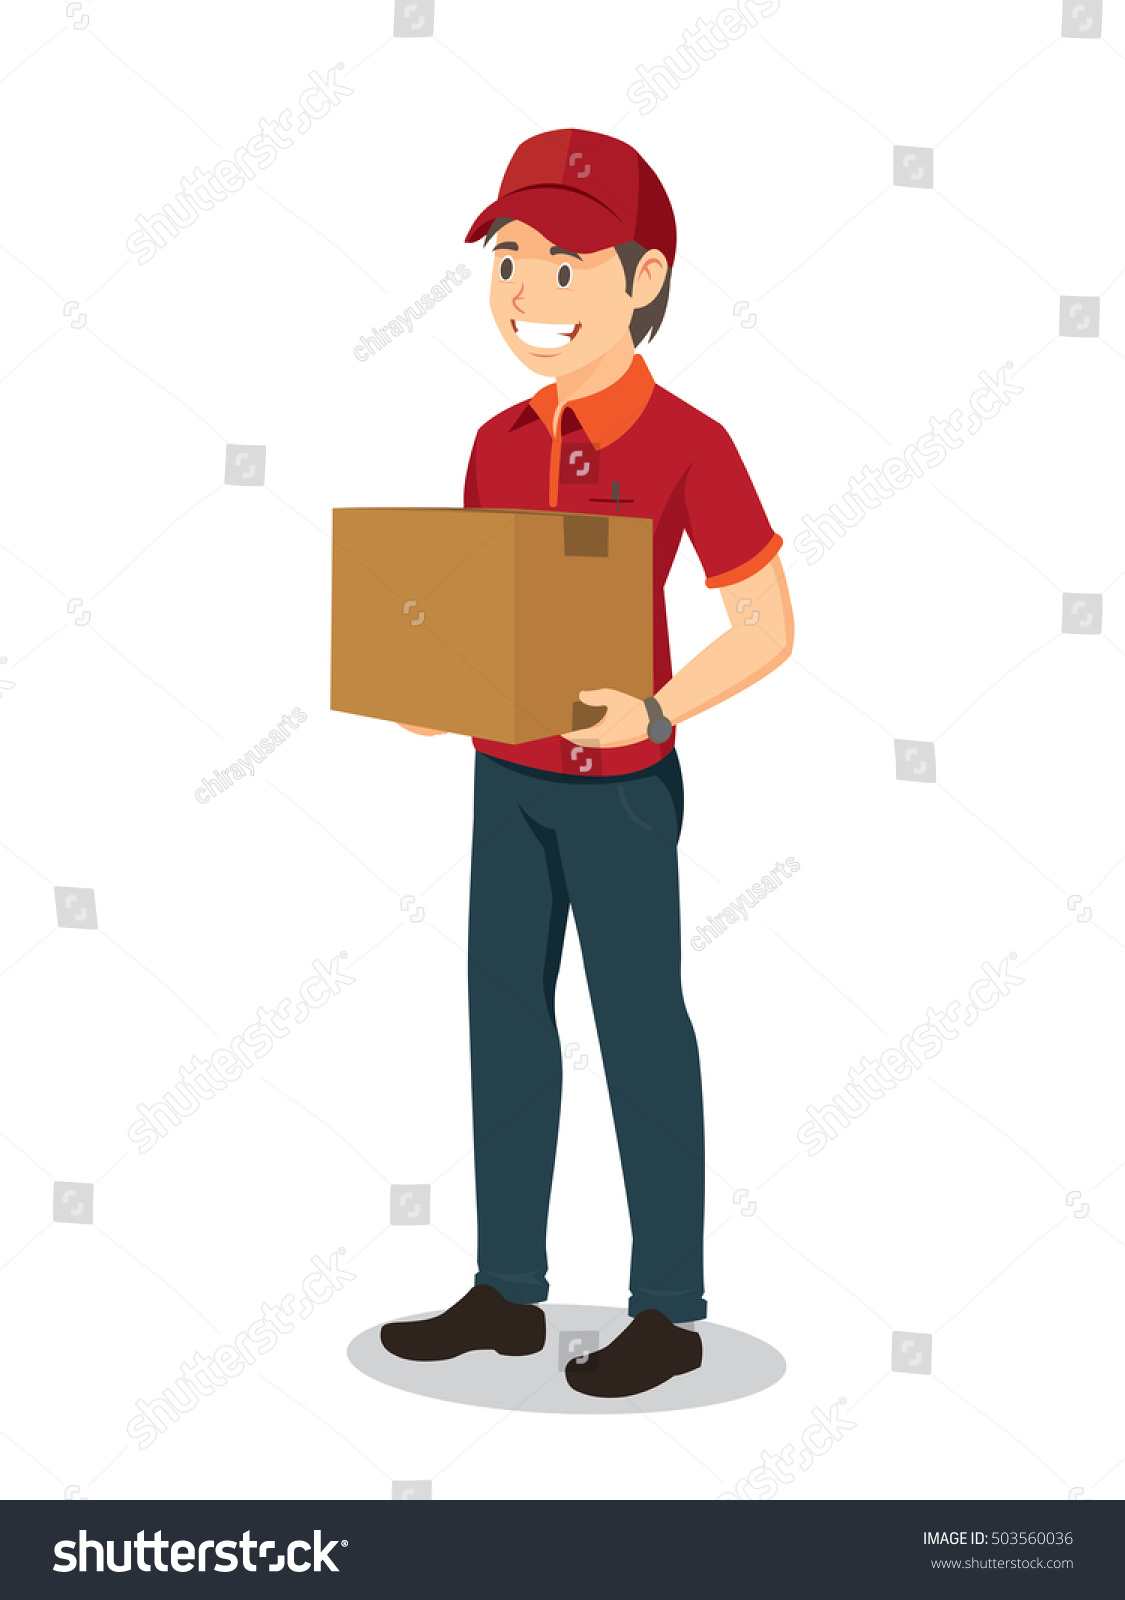 Parcel Delivery Man Holding Large Box Stock Vector (Royalty Free ...